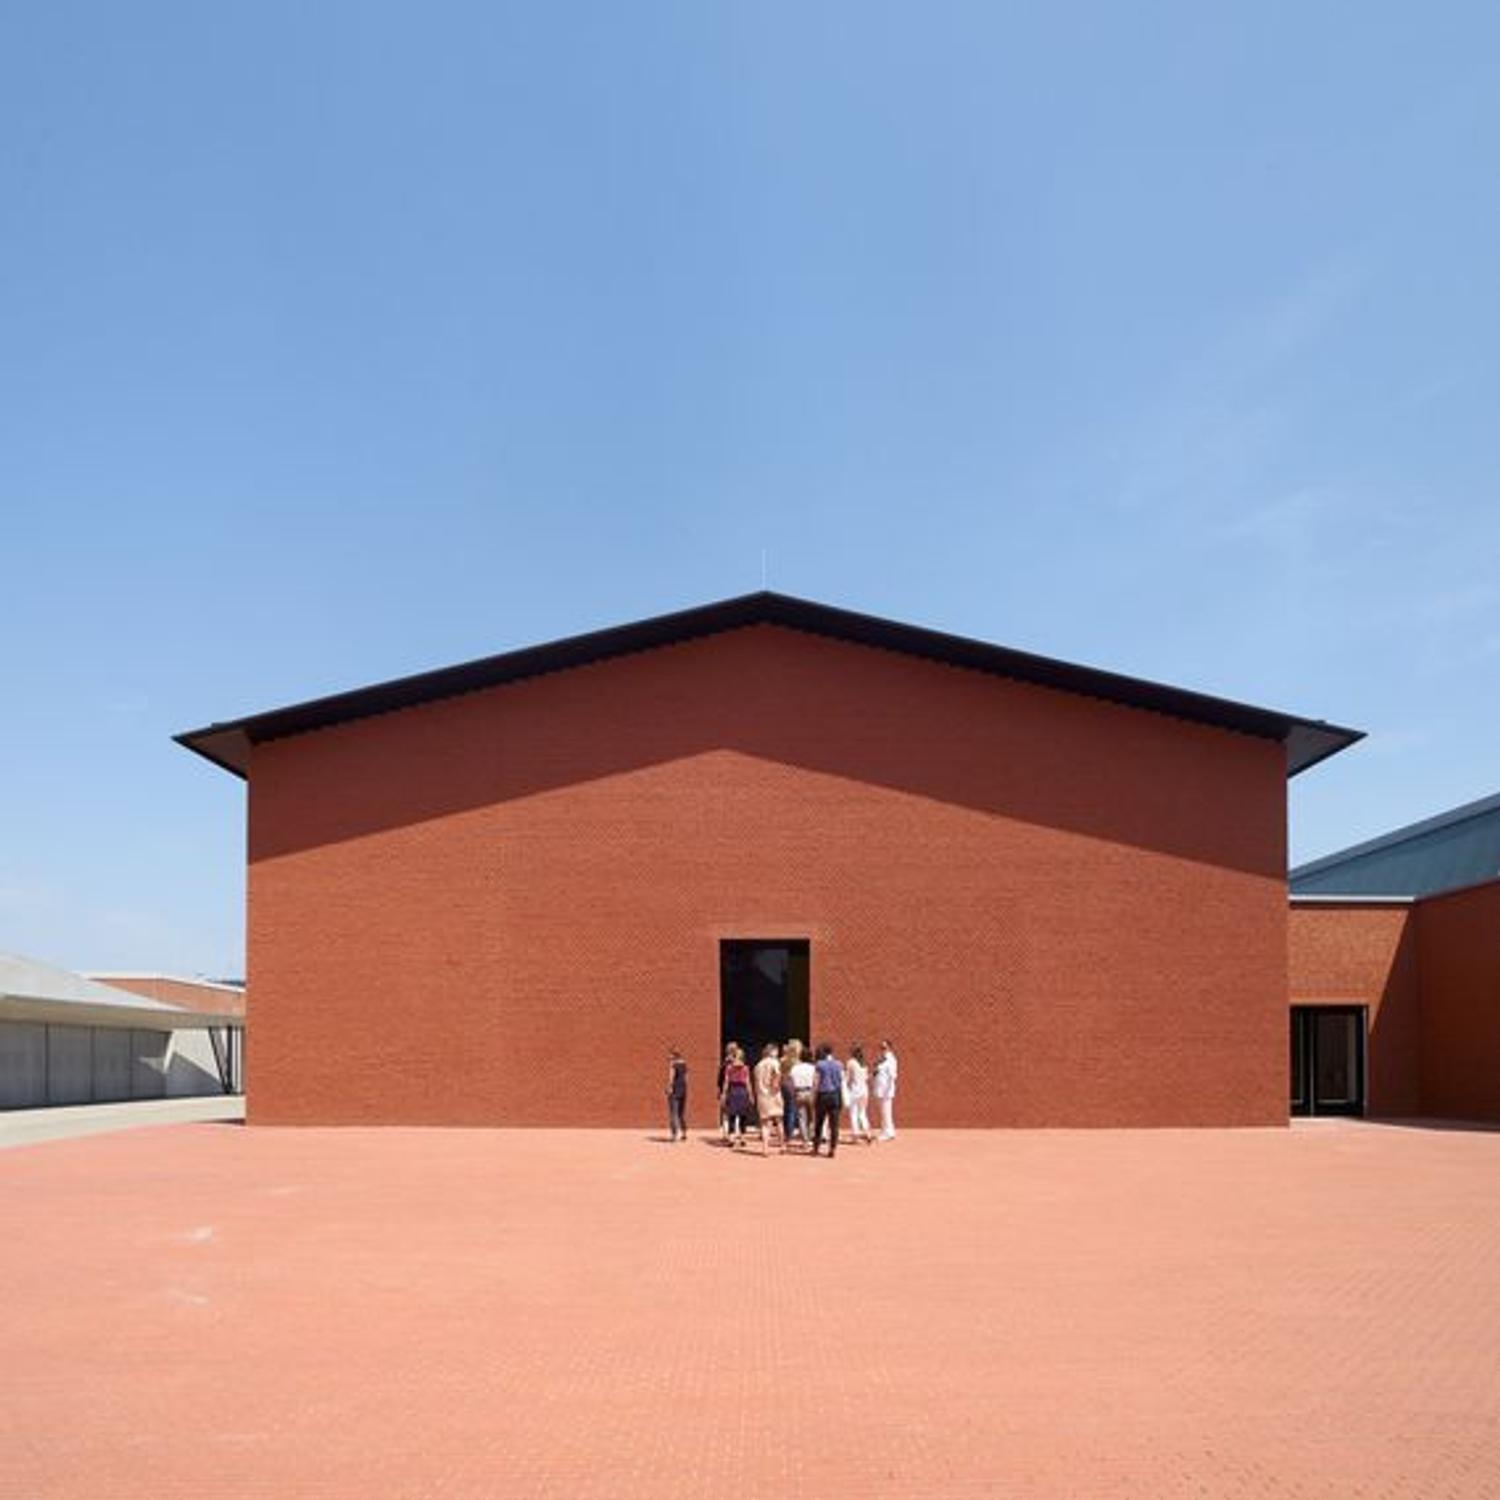 Vitra design museum opens schaudepot building designed by for Vitra museum basel